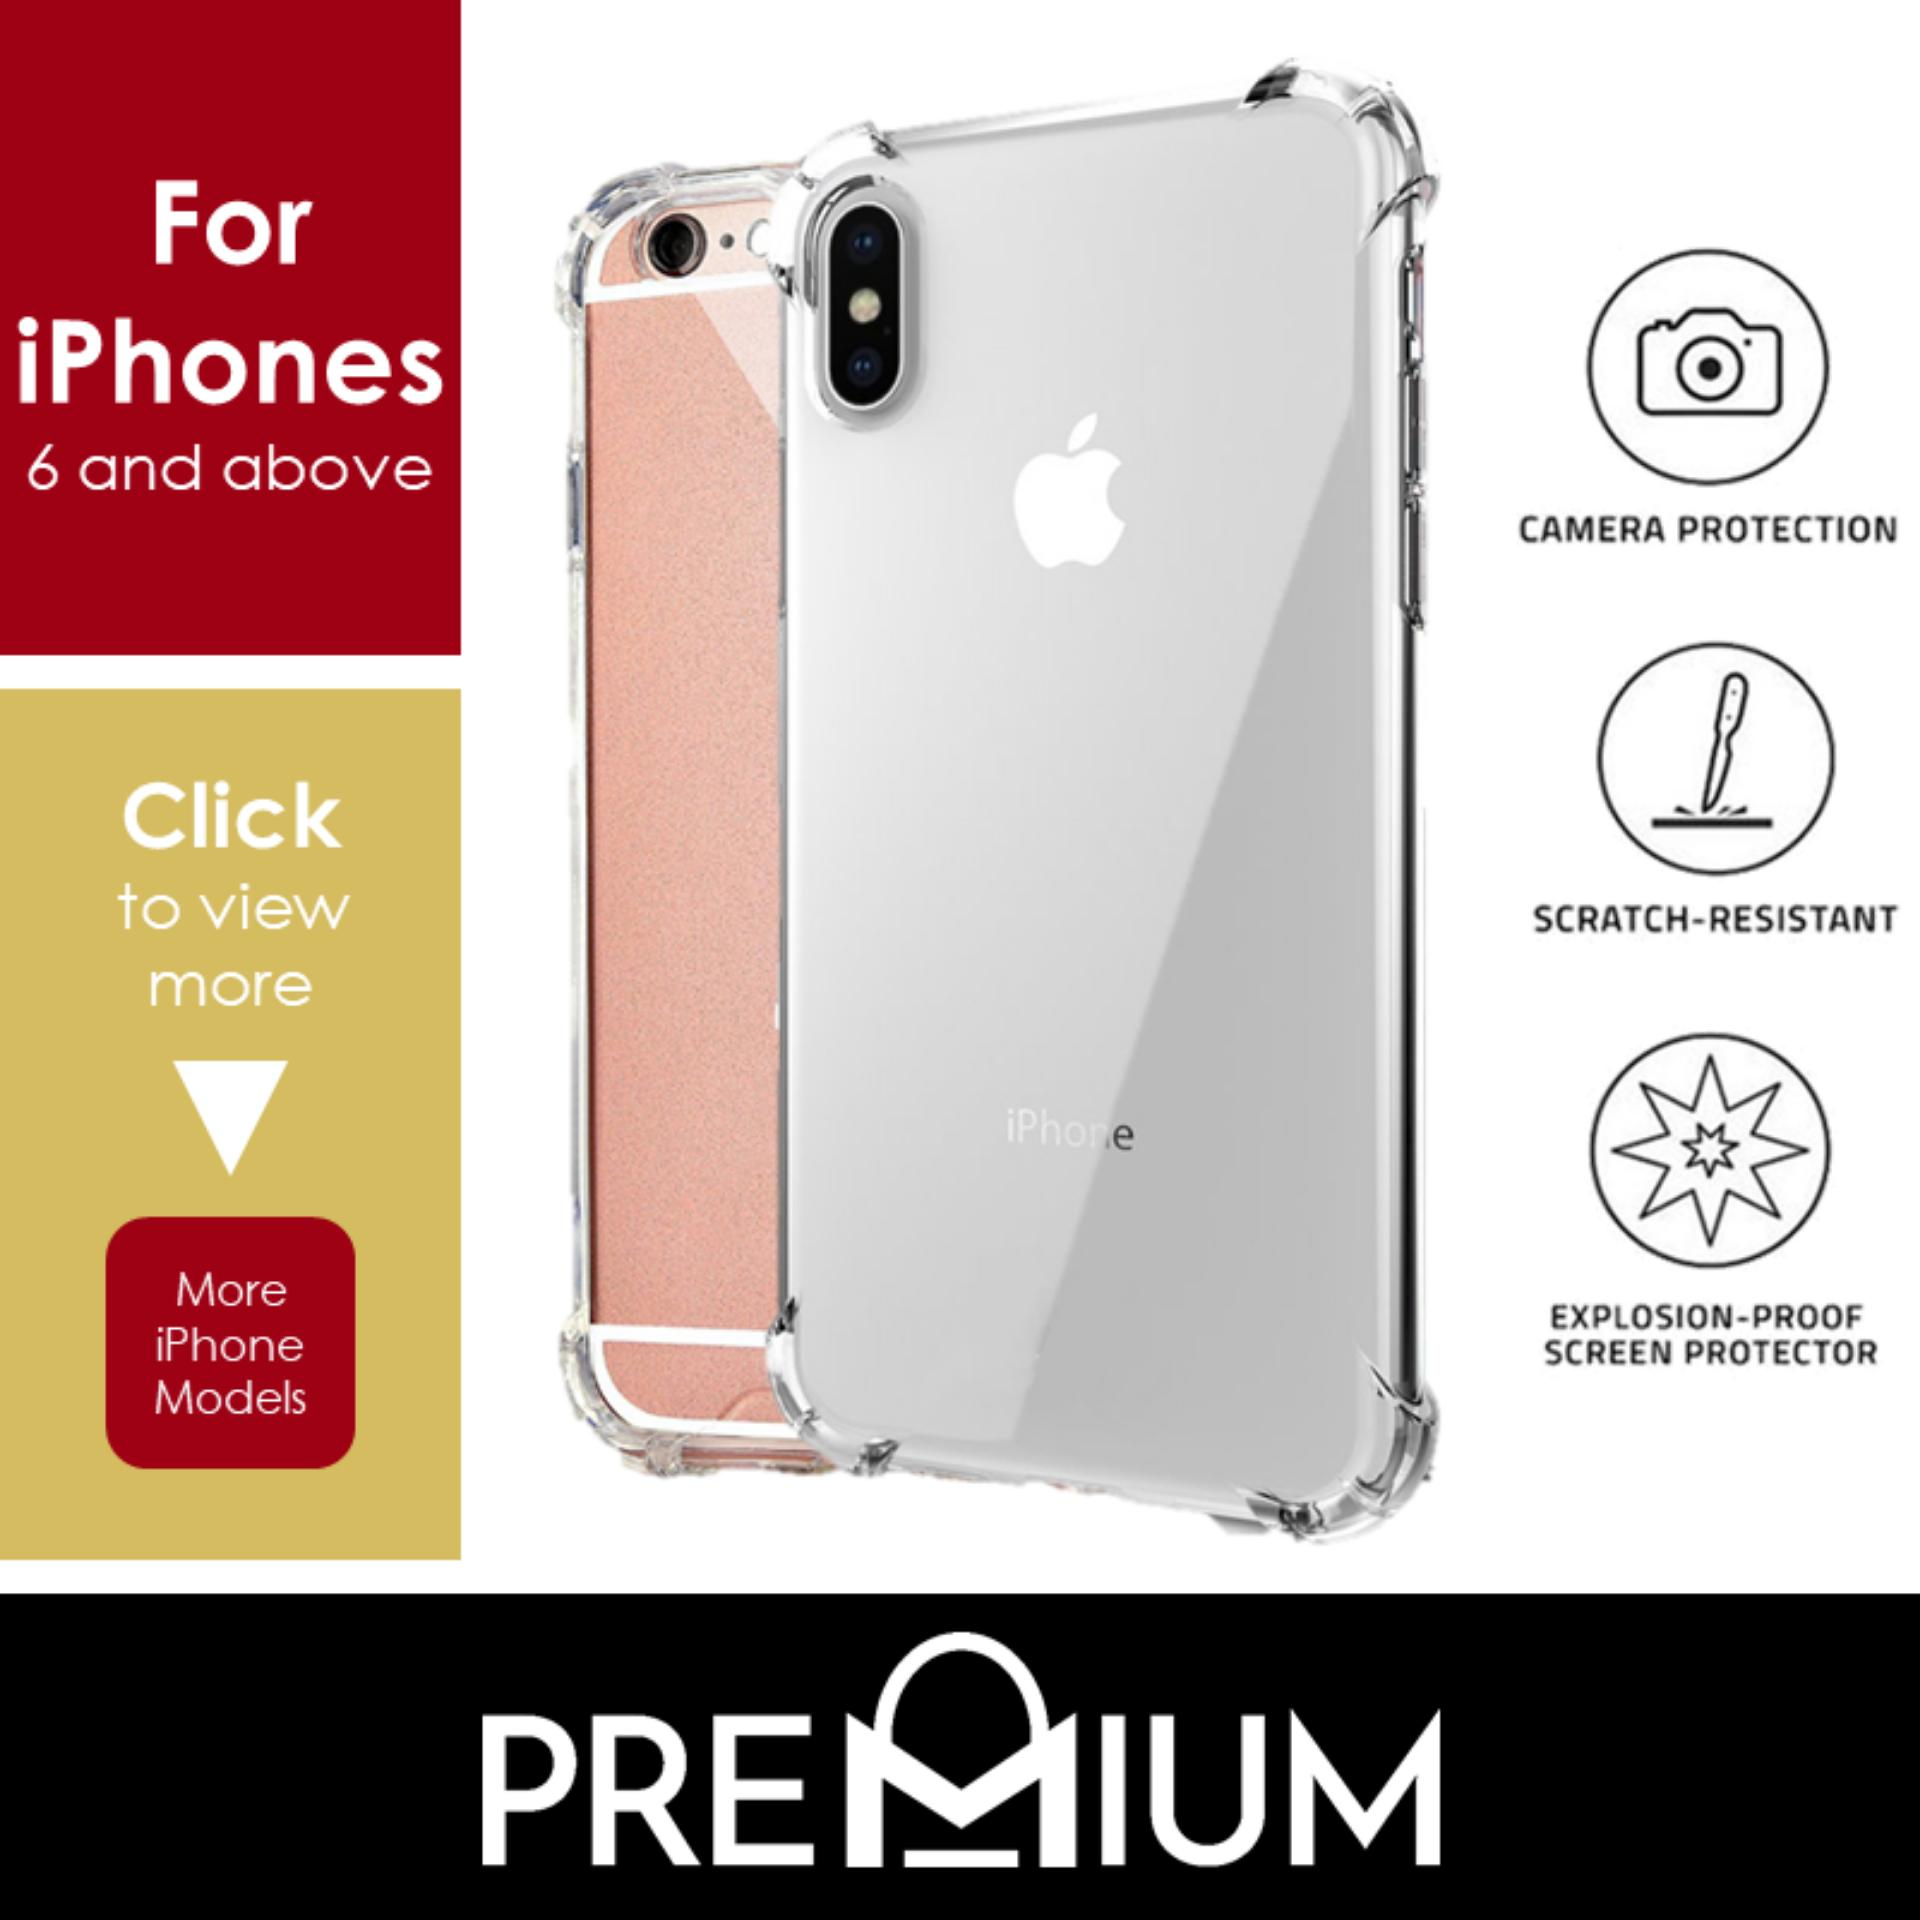 Anti Shock Tough Armor Slim Flexible Case Casing Phone Cases For iPhone Xs Max XR X 7 8 6 6S 5 5S Plus – Clear